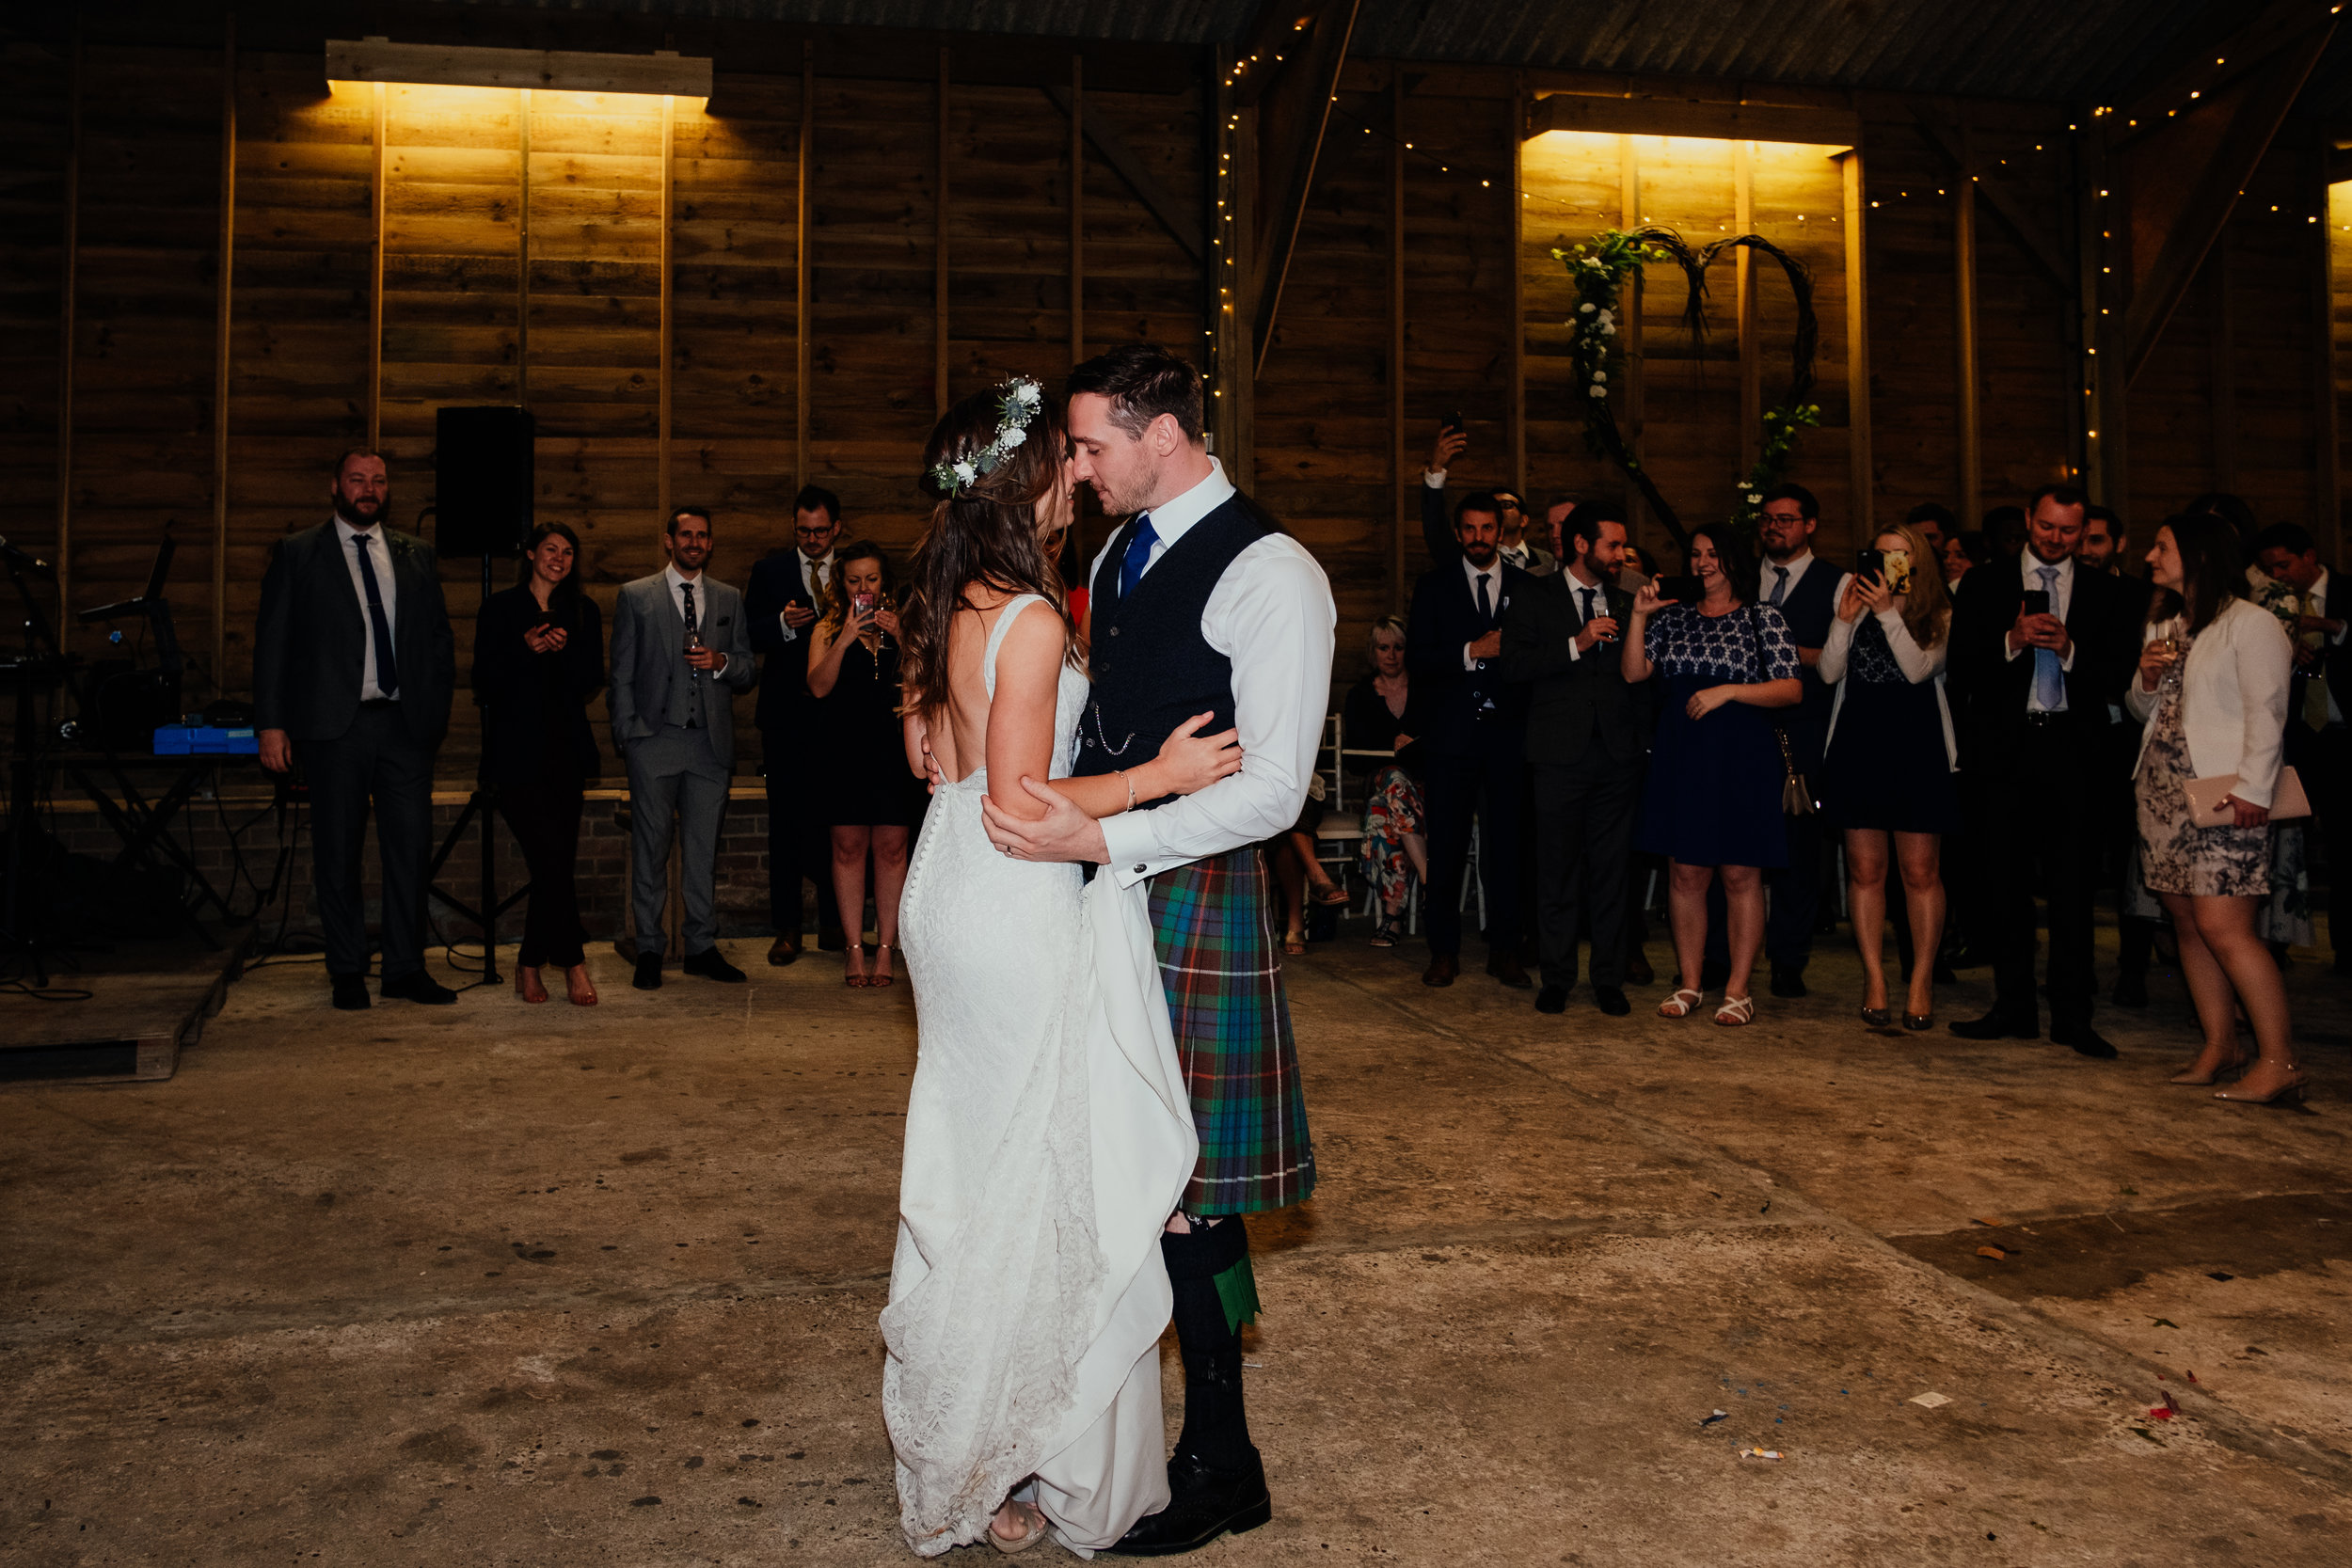 Bride and Groom first dance at Captains Wood Barn wedding